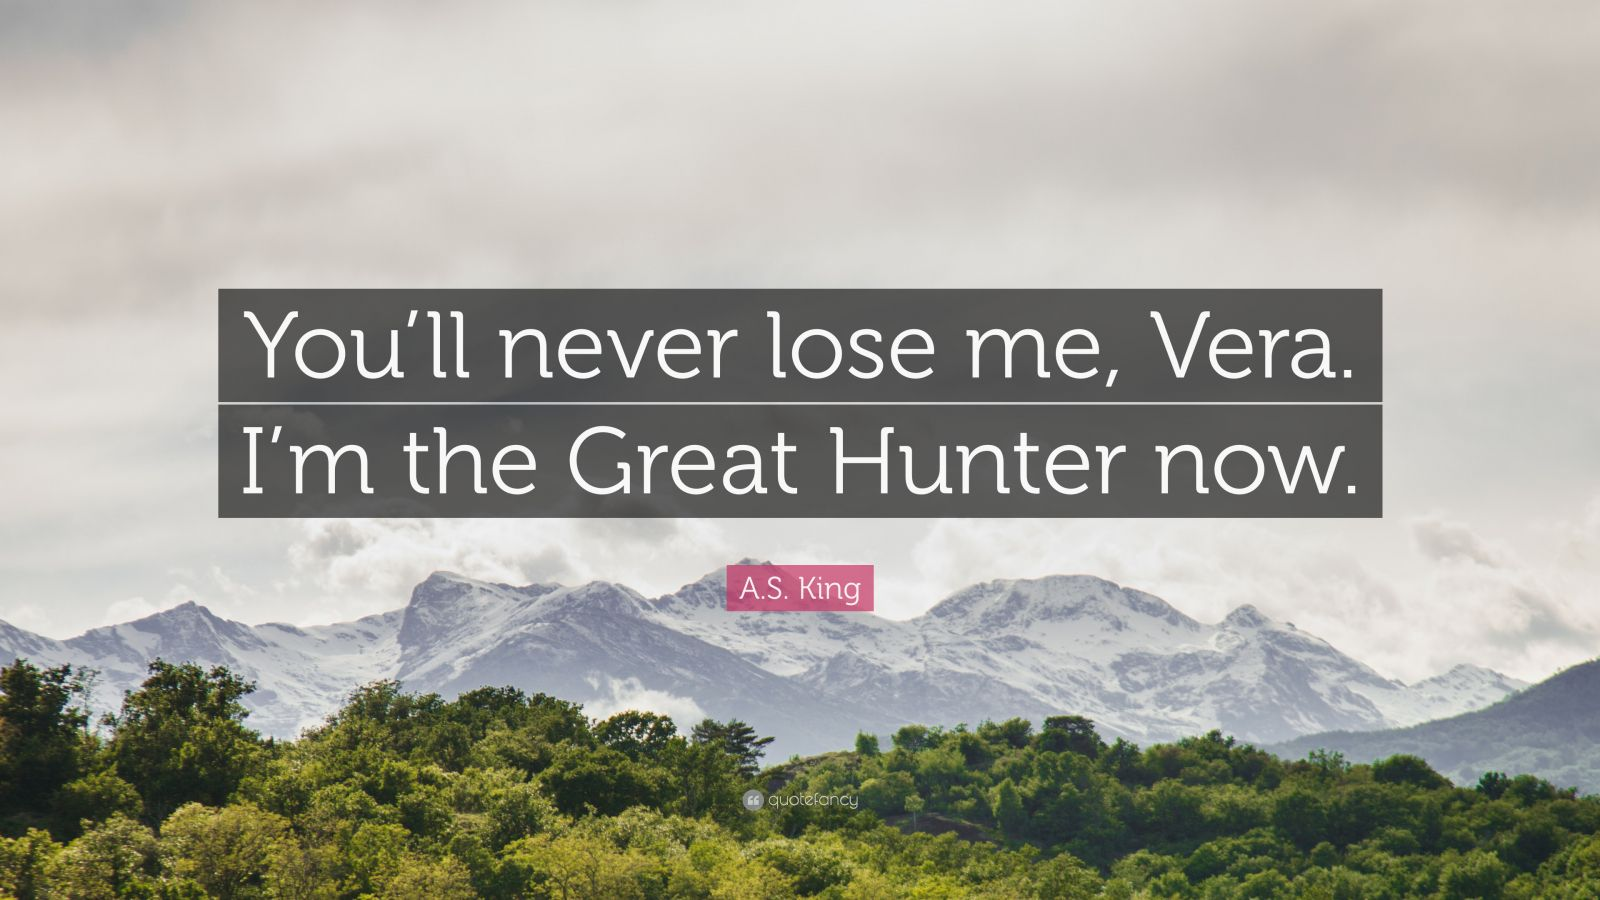 """A.S. King Quote: """"You'll never lose me, Vera. I'm the Great Hunter now."""""""